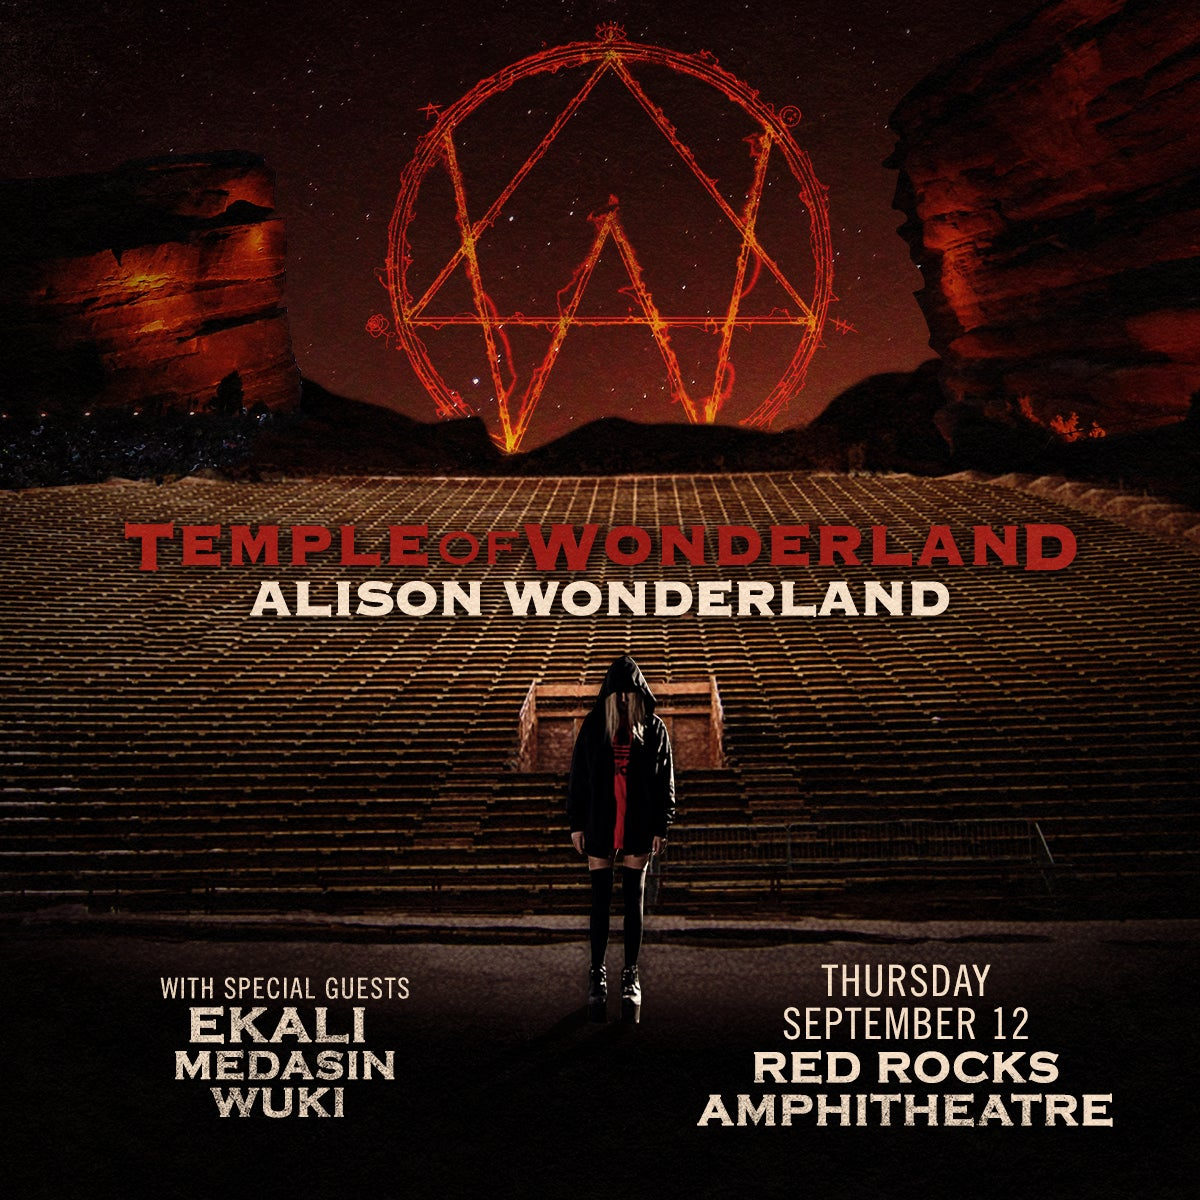 Alison Wonderland Red Rocks Entertainment Concerts